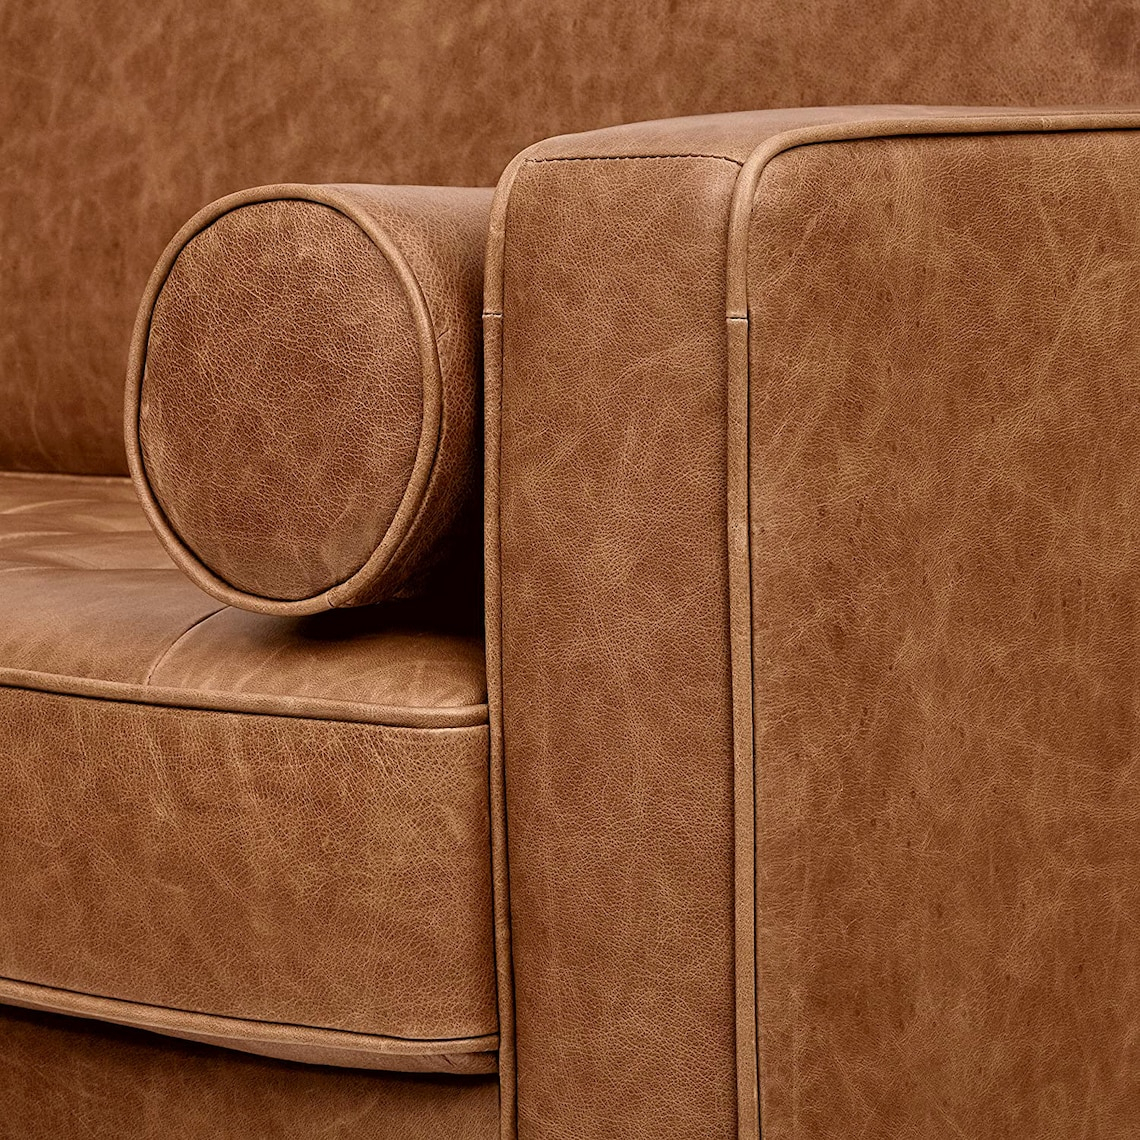 Cognac Leather Modern Couch Leather Couch Brown Mid With Regard To Florence Mid Century Modern Right Sectional Sofas Cognac Tan (View 12 of 15)